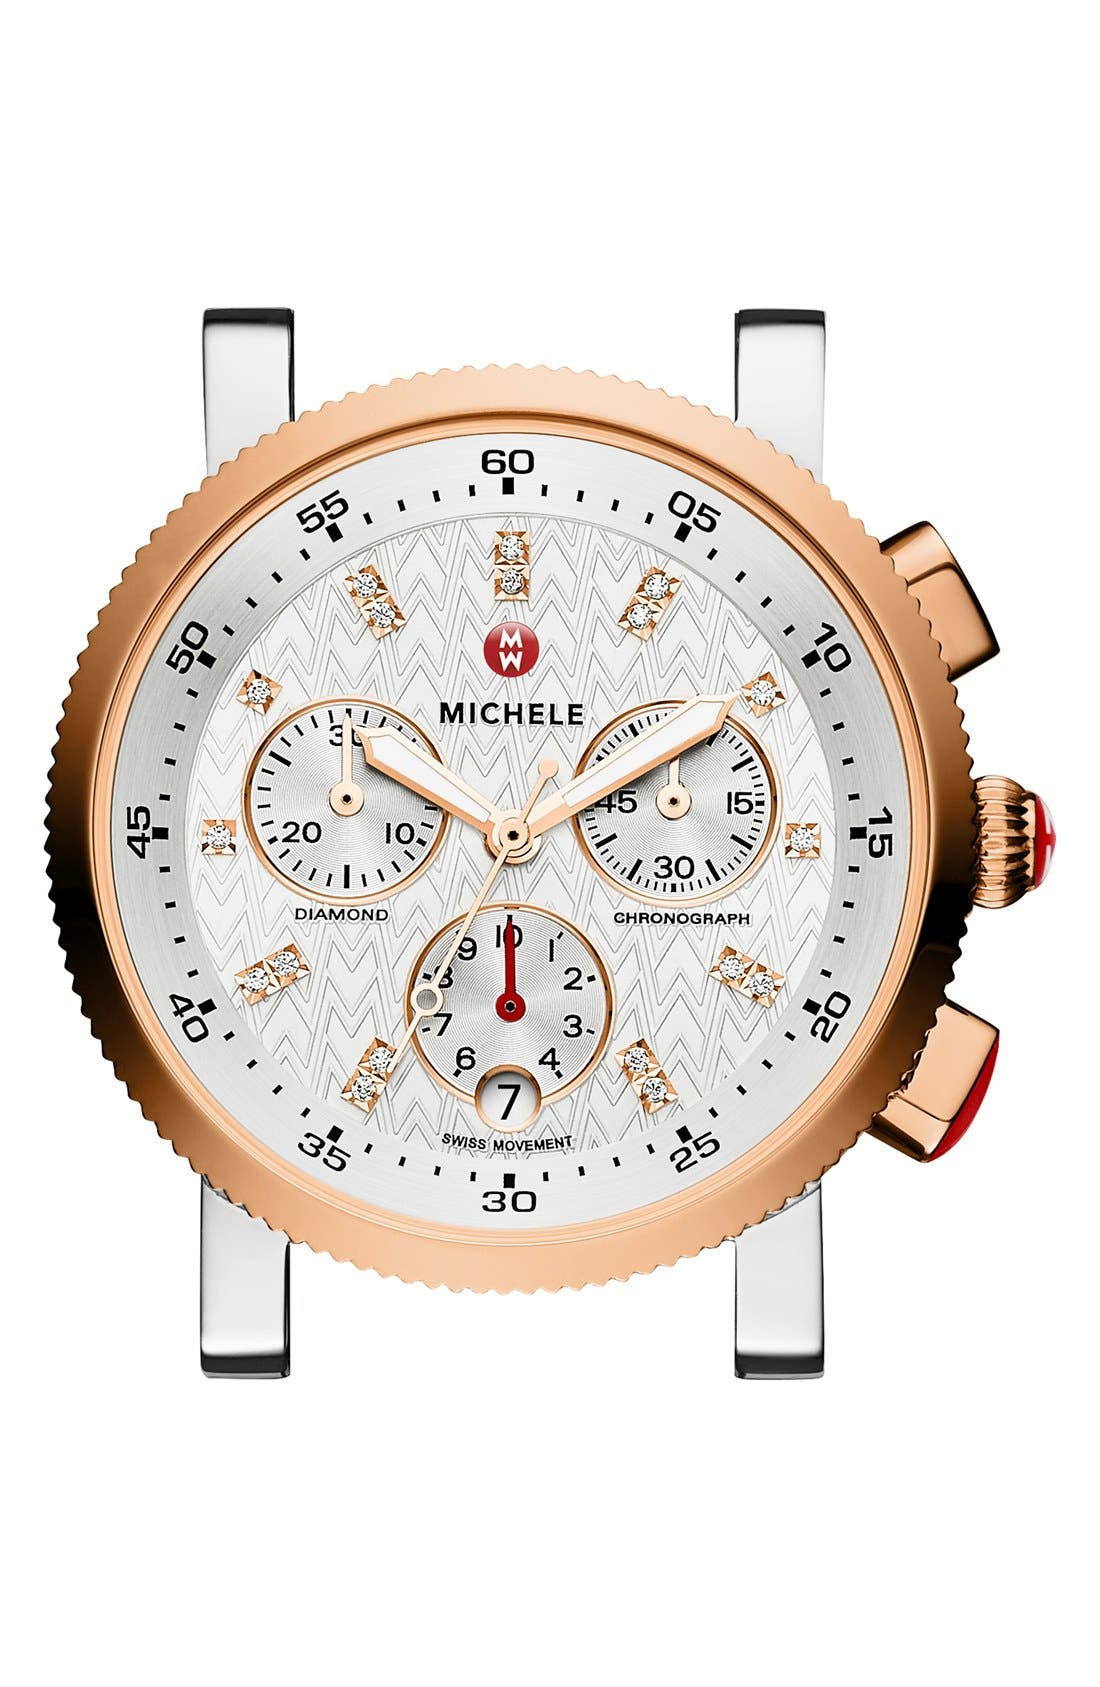 MICHELE Sport Sail Chronograph Watch Head, 38mm